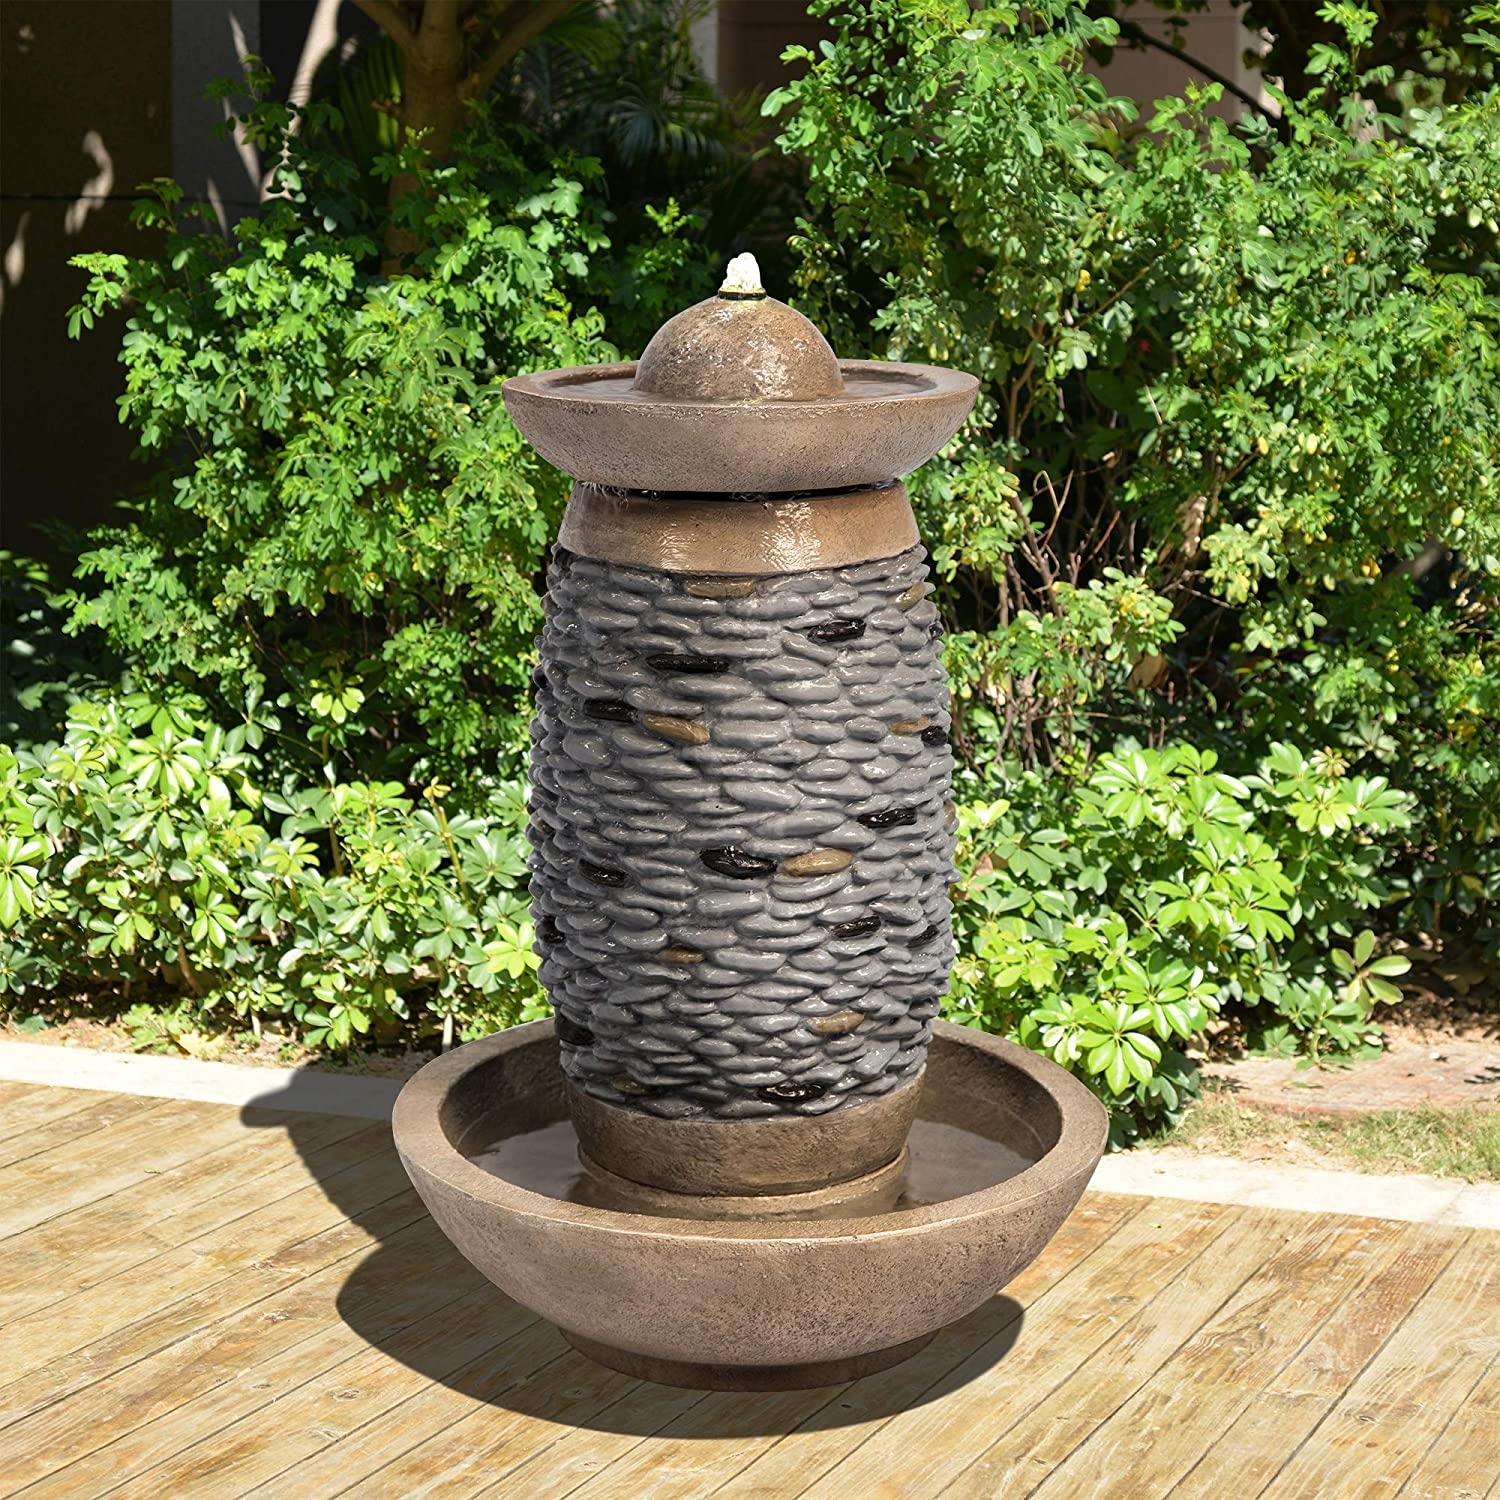 Peaktop VFD8411 Outdoor Garden Patio Backyard Decking Cobblestones with Sphere Stone Floor Waterfall Water Fountain with LED Light and Pump, Brown and Gray